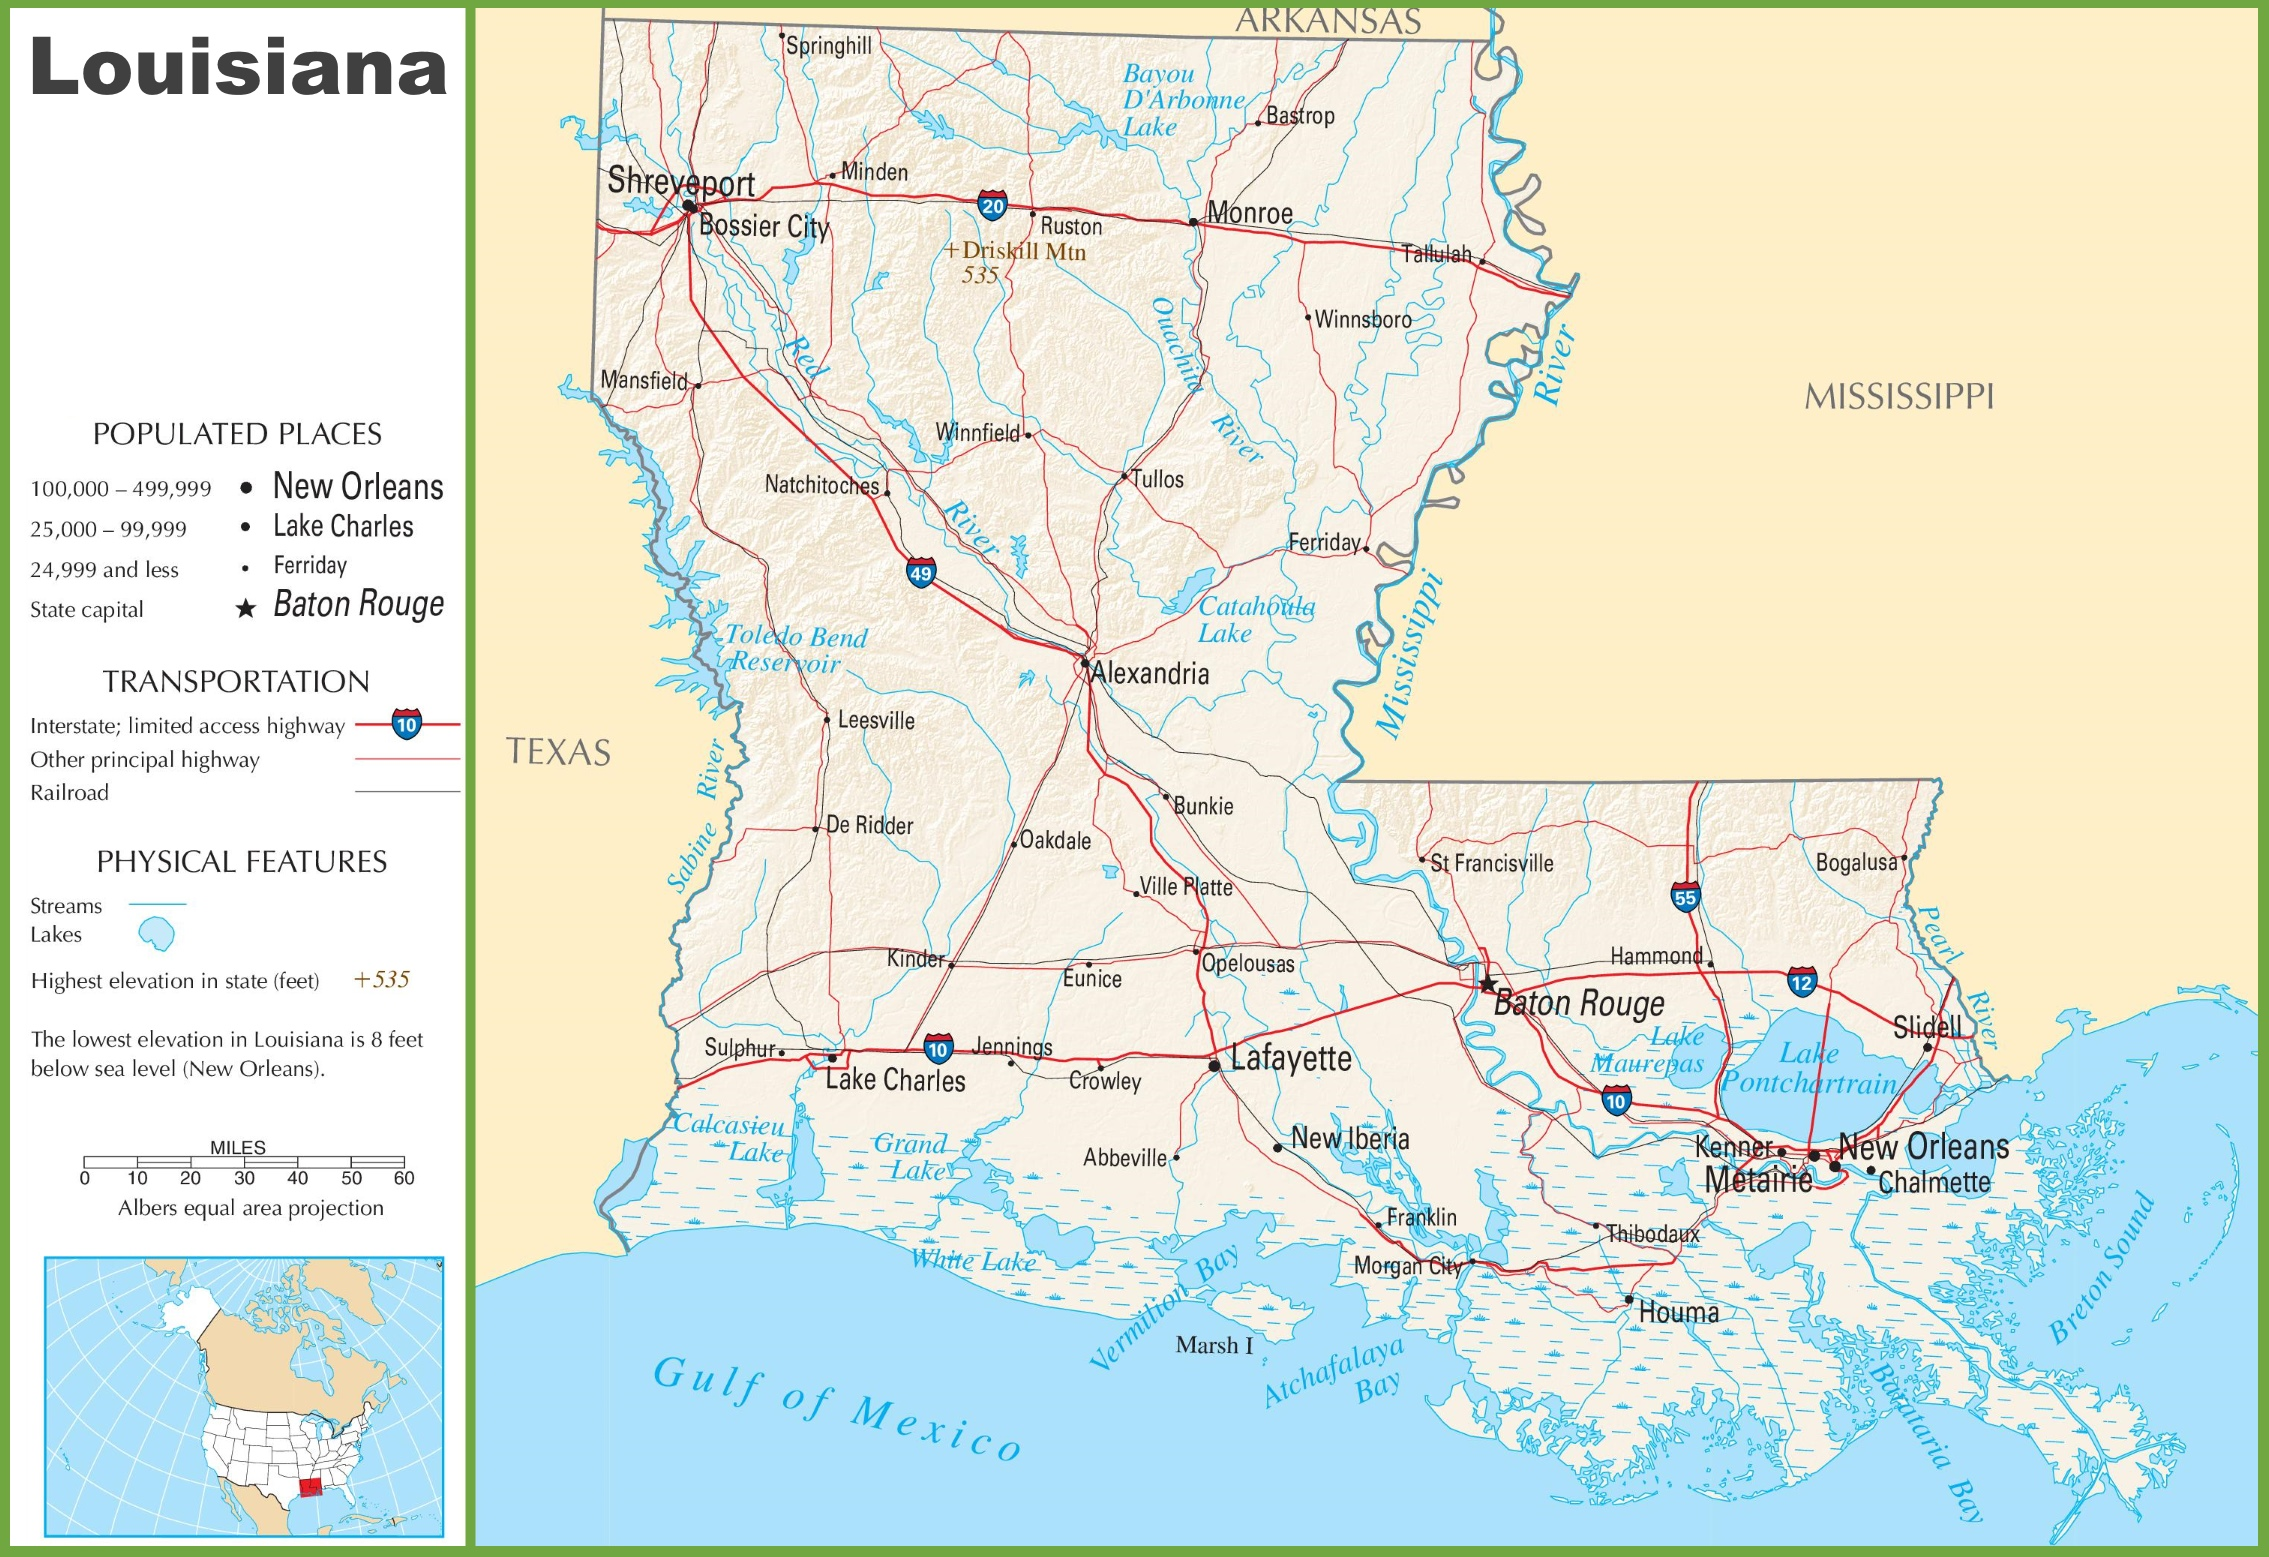 louisiana state road the southern pacific route across louisiana